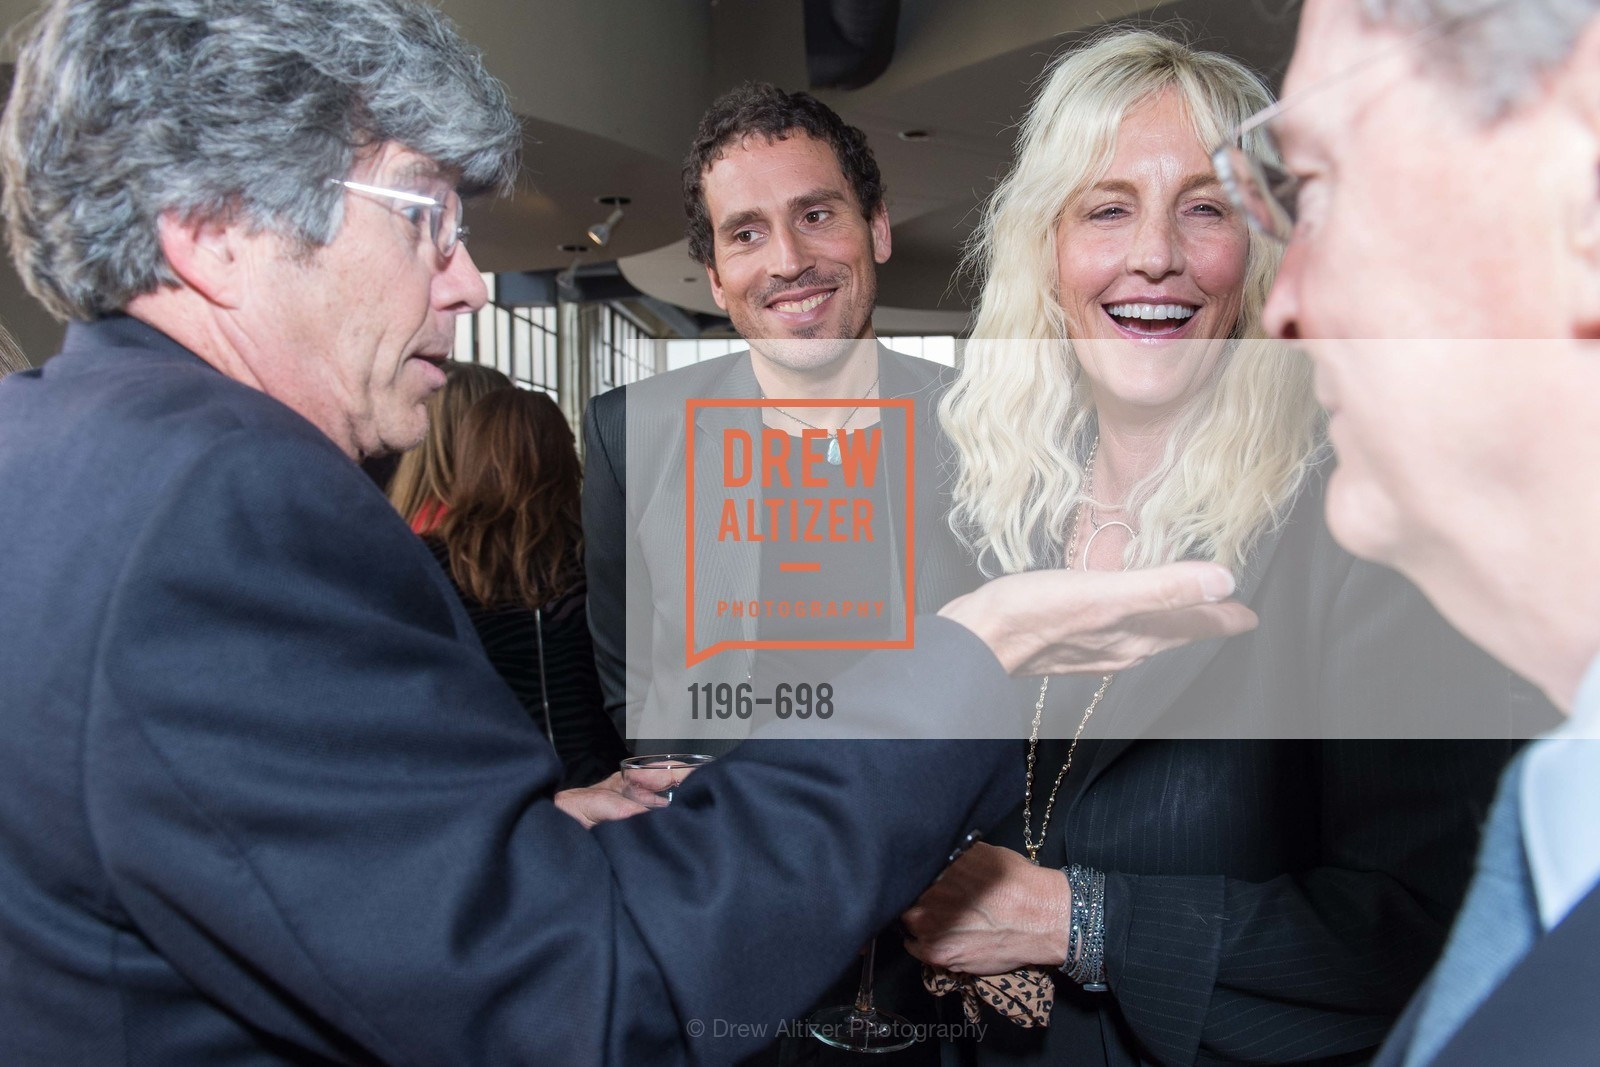 Gunnar Lovelace, Erin Brockovich, EWG's 6th Annual Earth Dinner, US, May 6th, 2015,Drew Altizer, Drew Altizer Photography, full-service event agency, private events, San Francisco photographer, photographer California